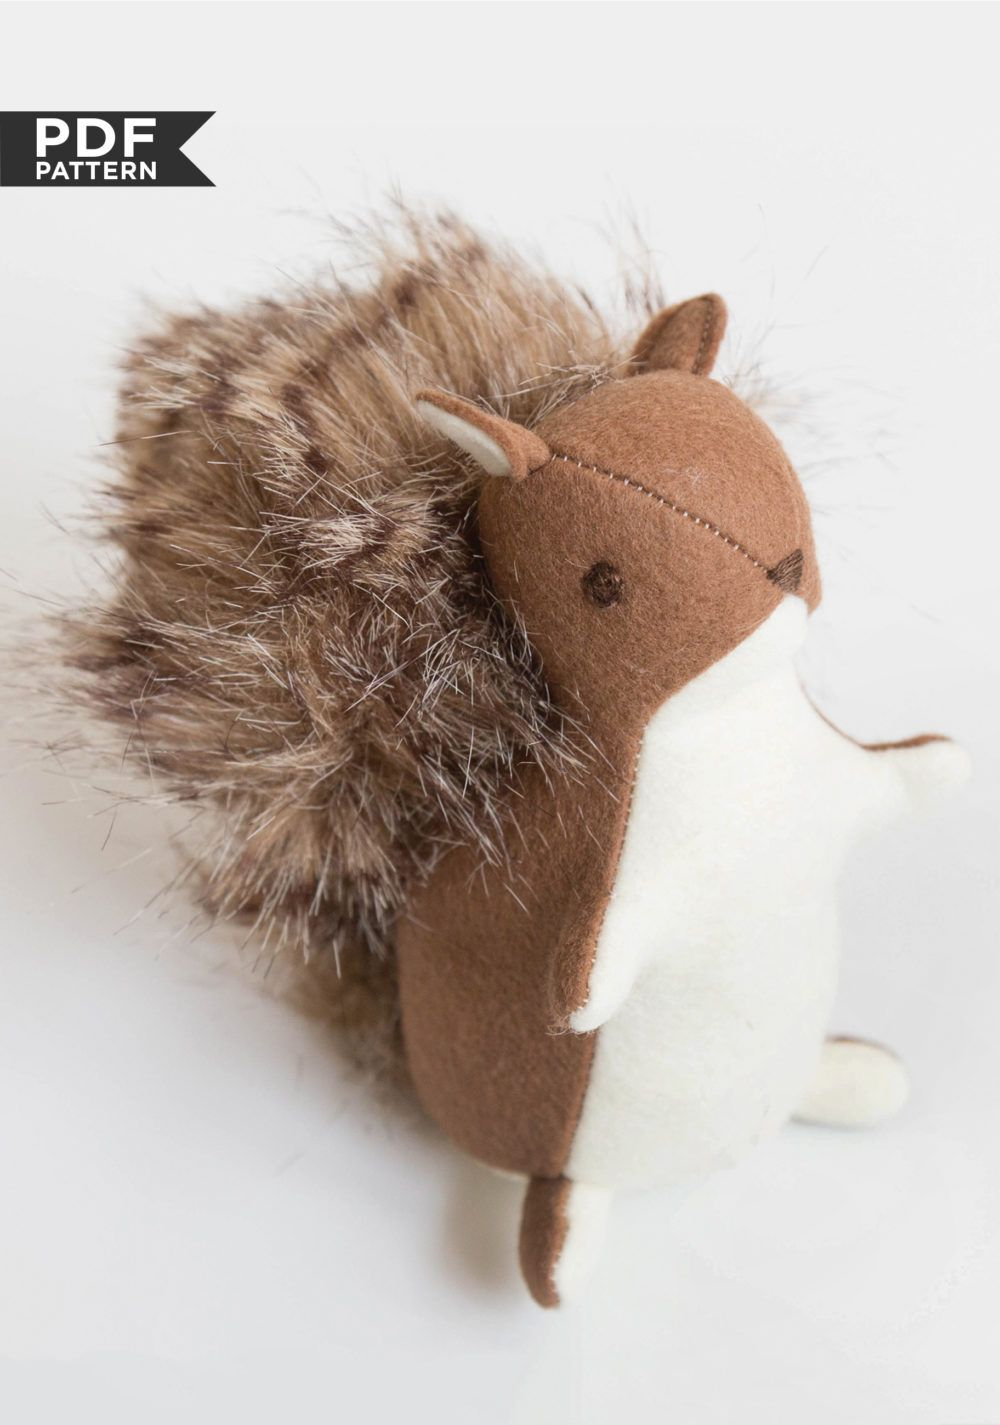 Squirrel Stuffed Toy Sewing Toys Beginner Knitting Projects Sewing Projects [ 1425 x 1000 Pixel ]